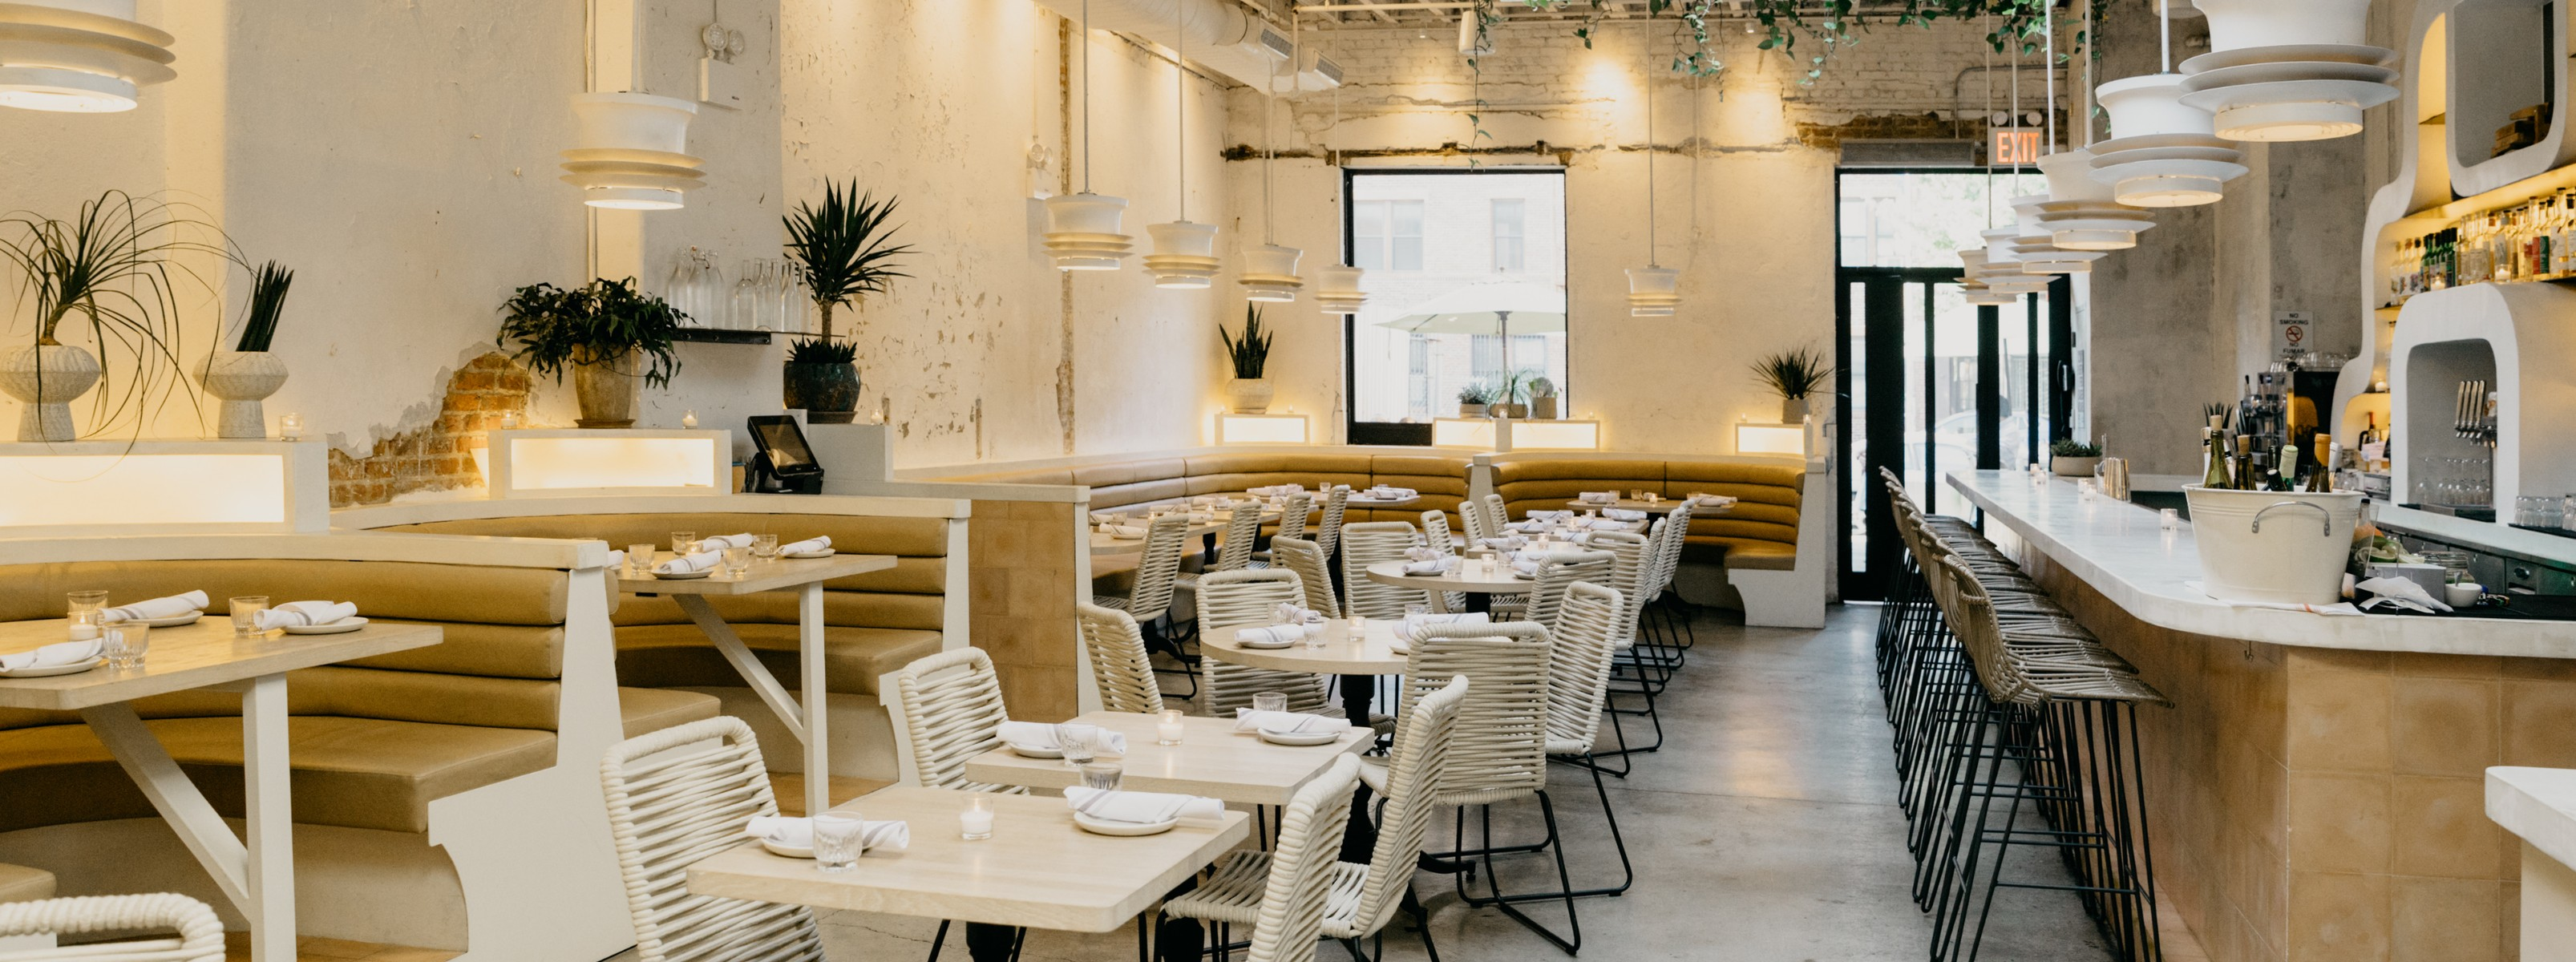 The 20 Best Restaurants In Greenpoint Greenpoint New